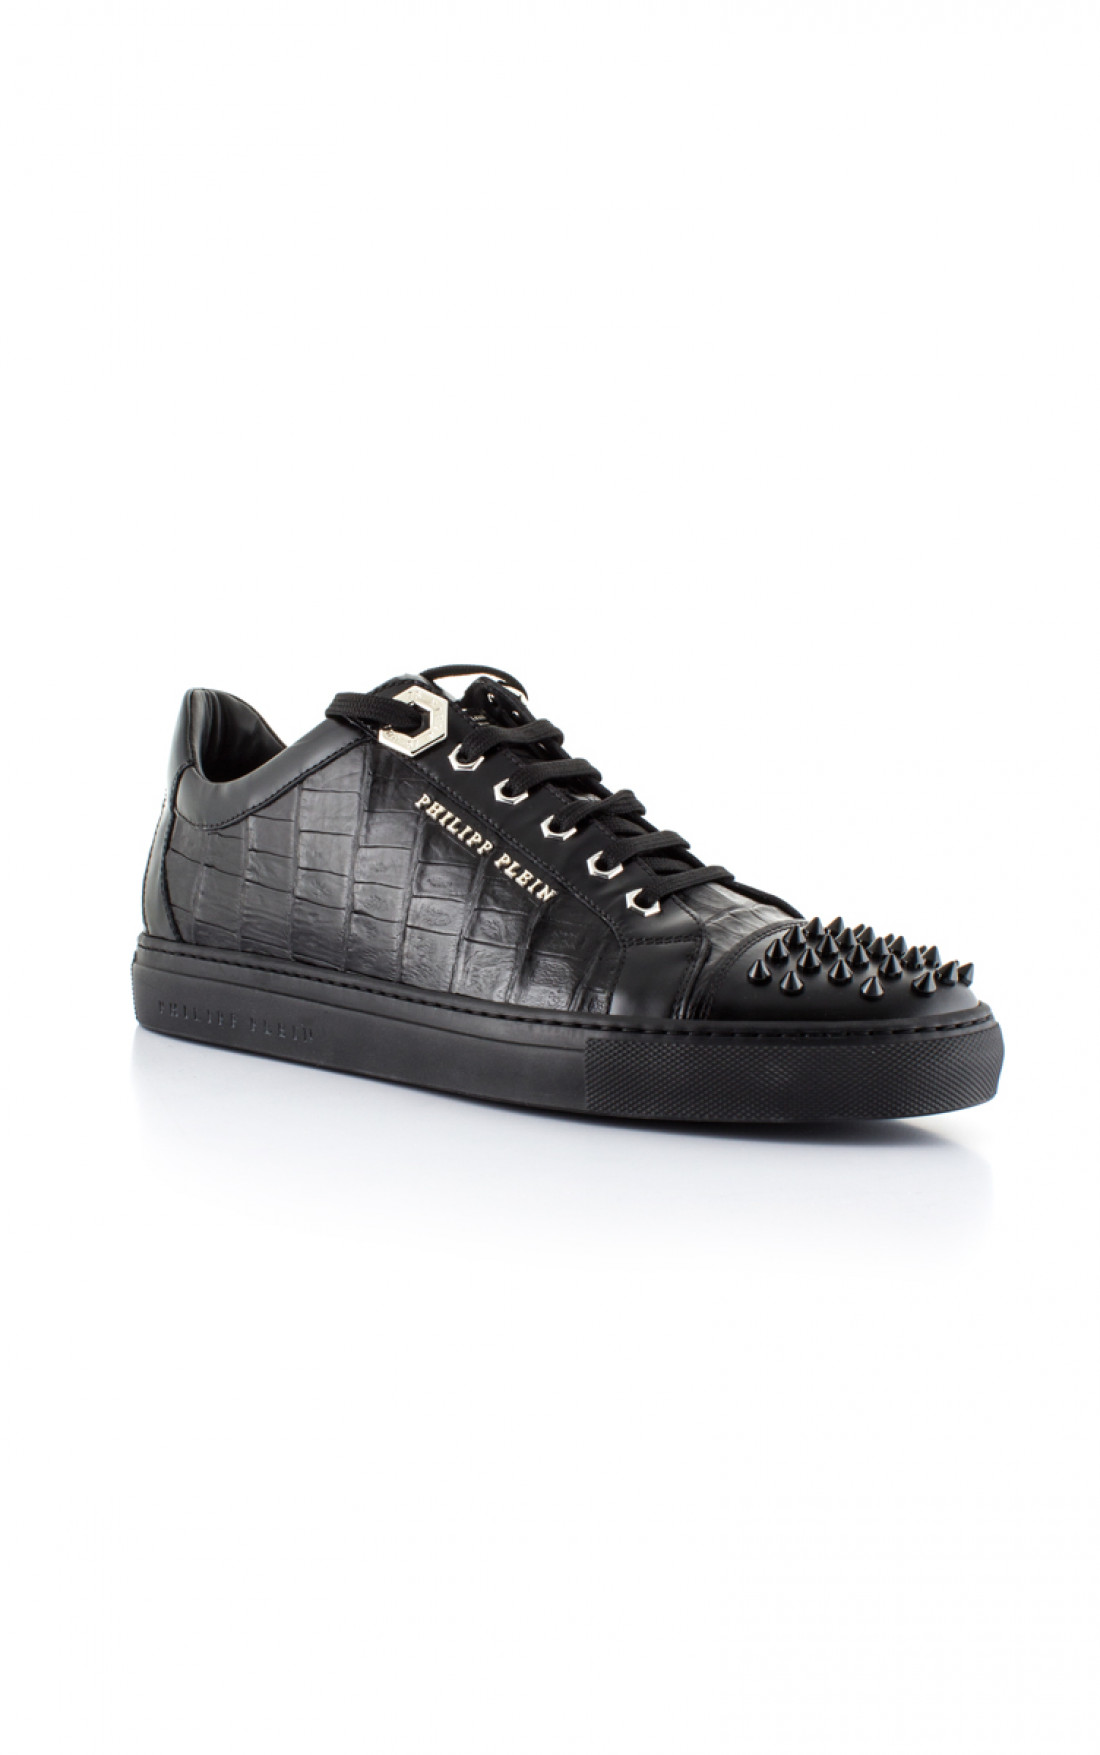 dca0152c131 Philipp Plein Started Sneakers Black